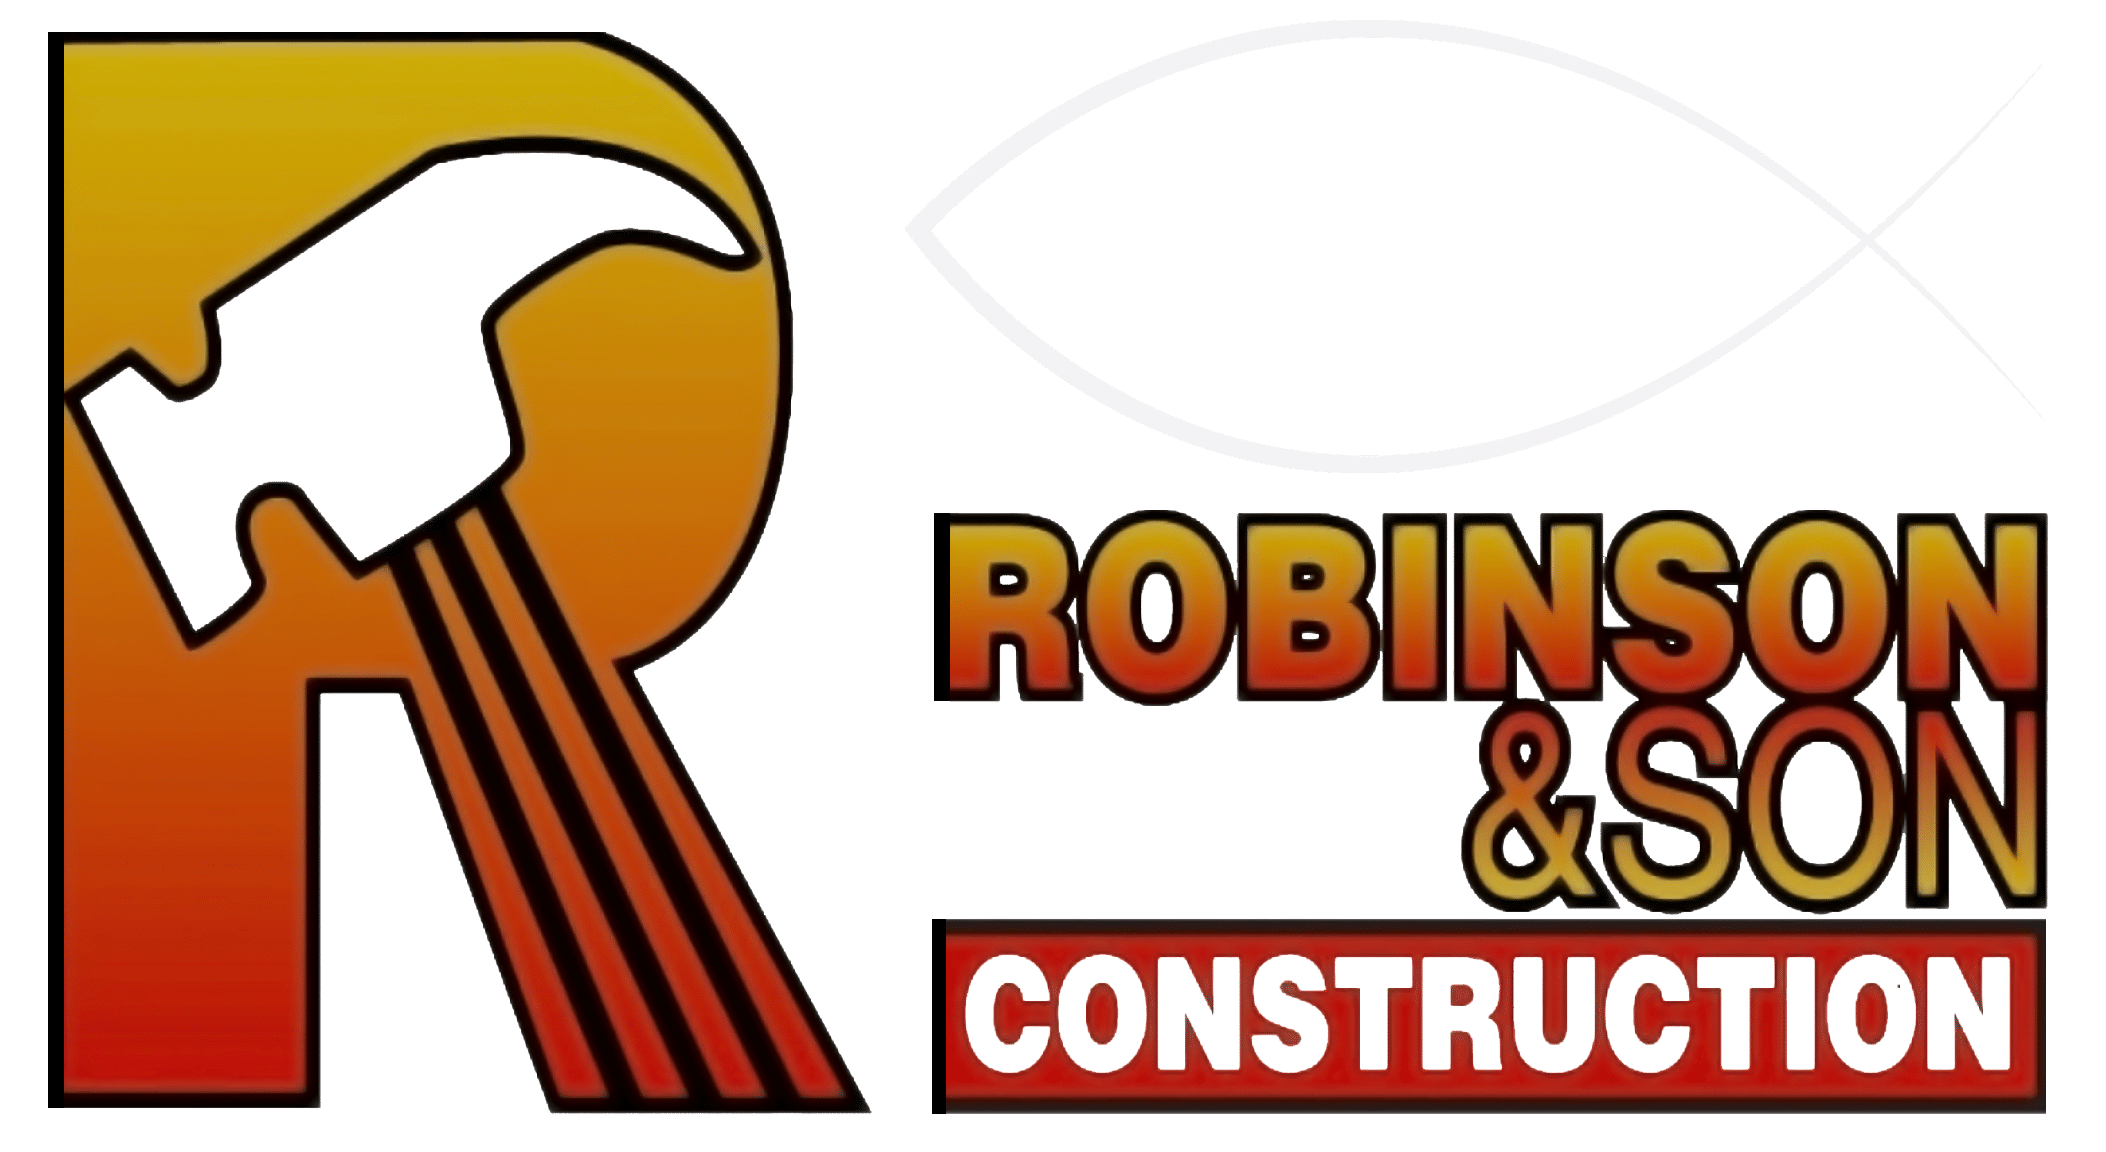 Robinson & Son Construction